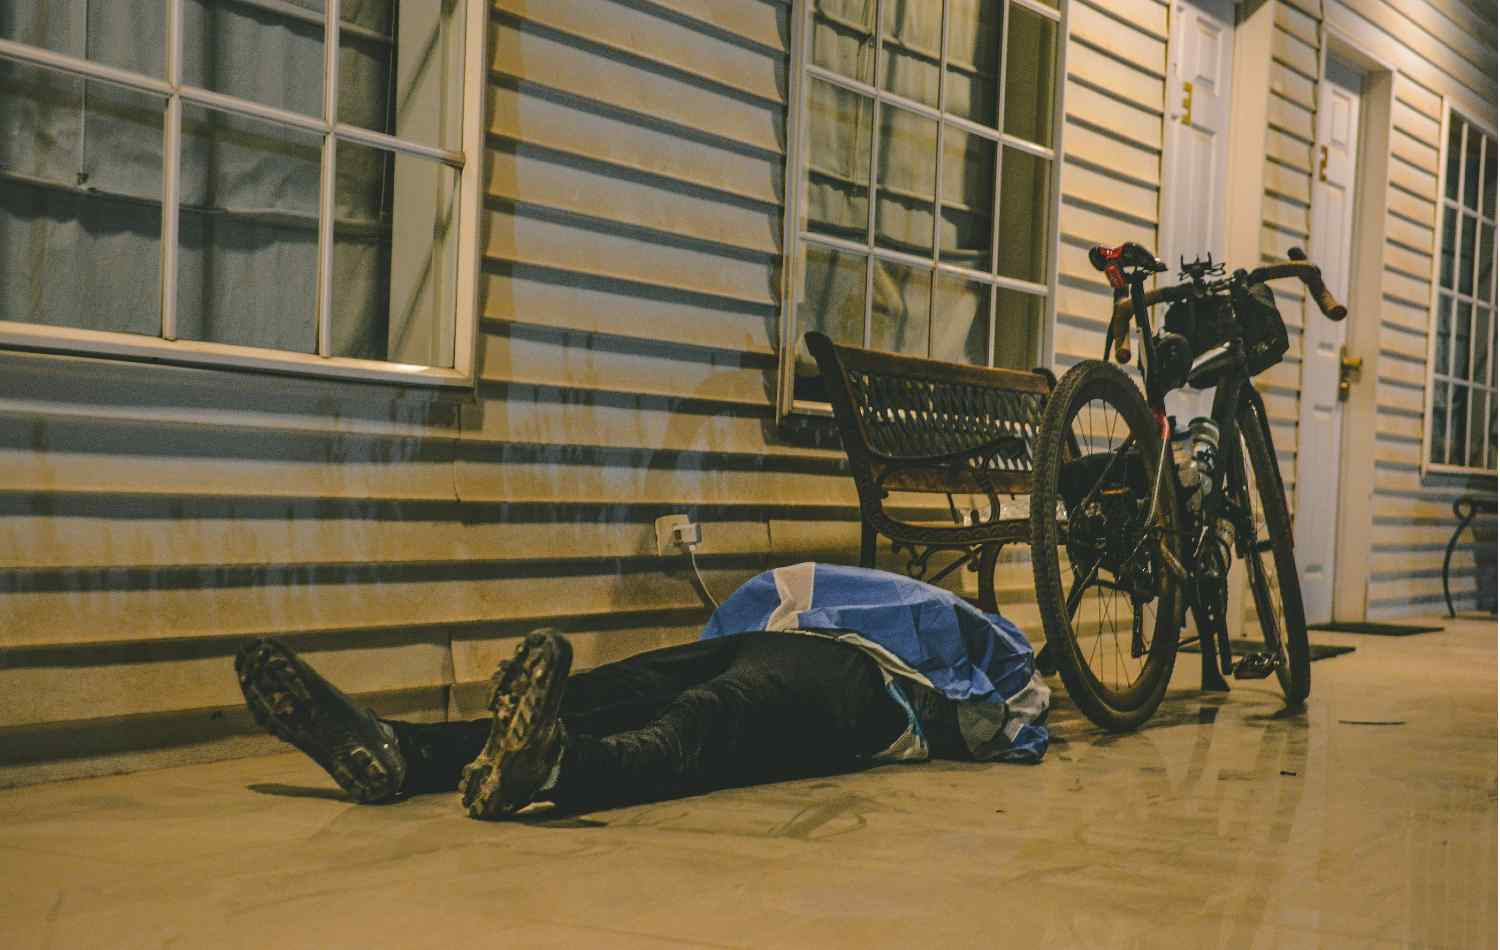 A person sleeping outside of a house on the floor next to his bike with bikepacking bags on it